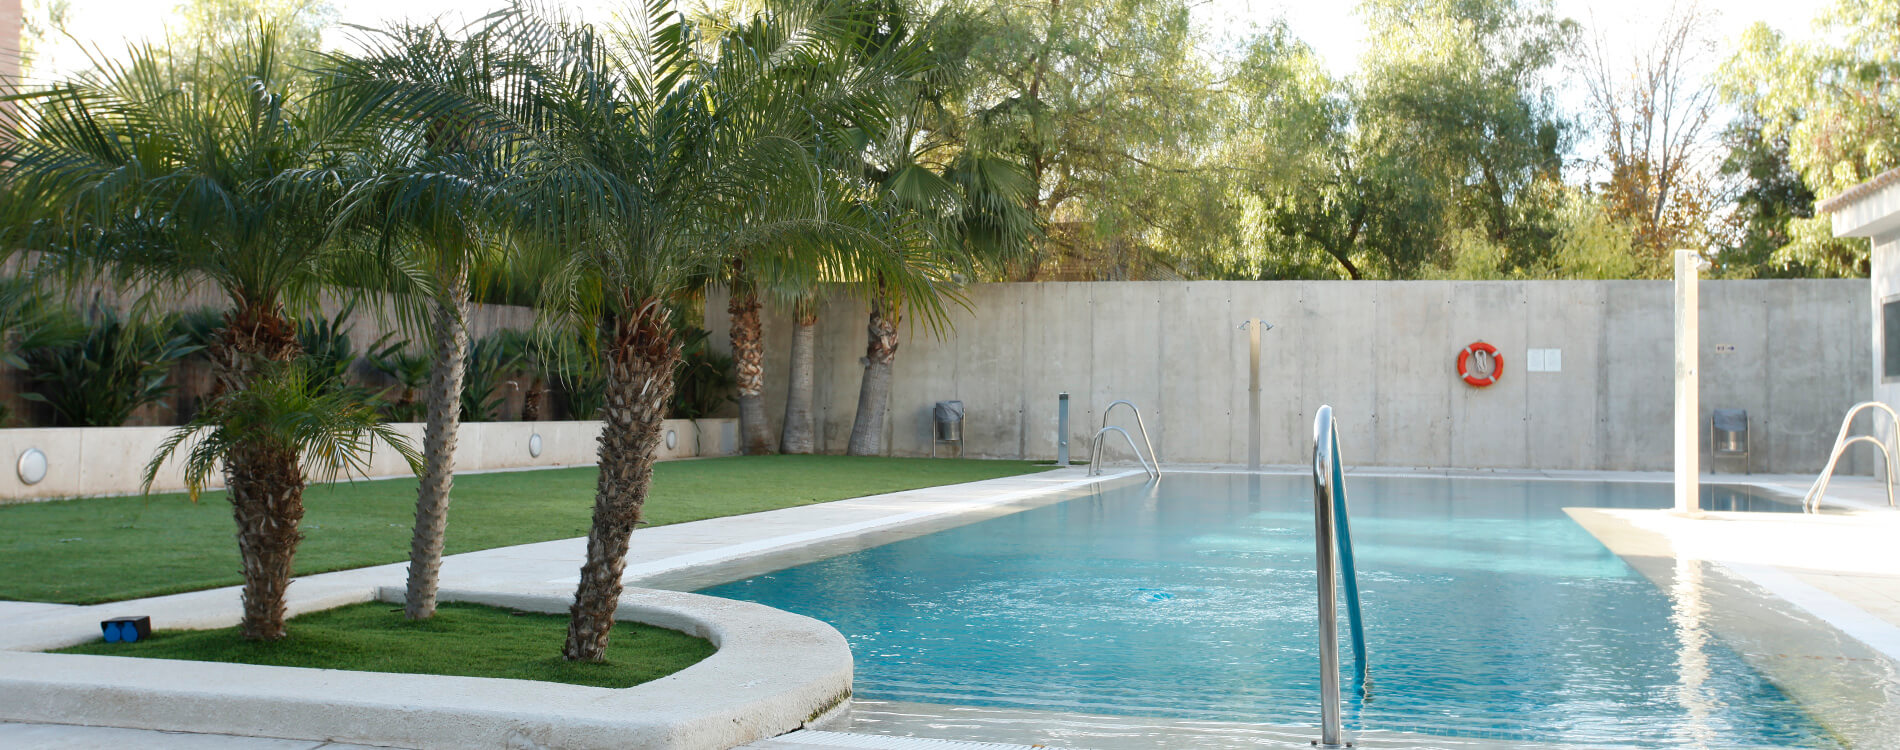 Services hotel spa jardines de lorca official website for Hotel spa jardines de lorca